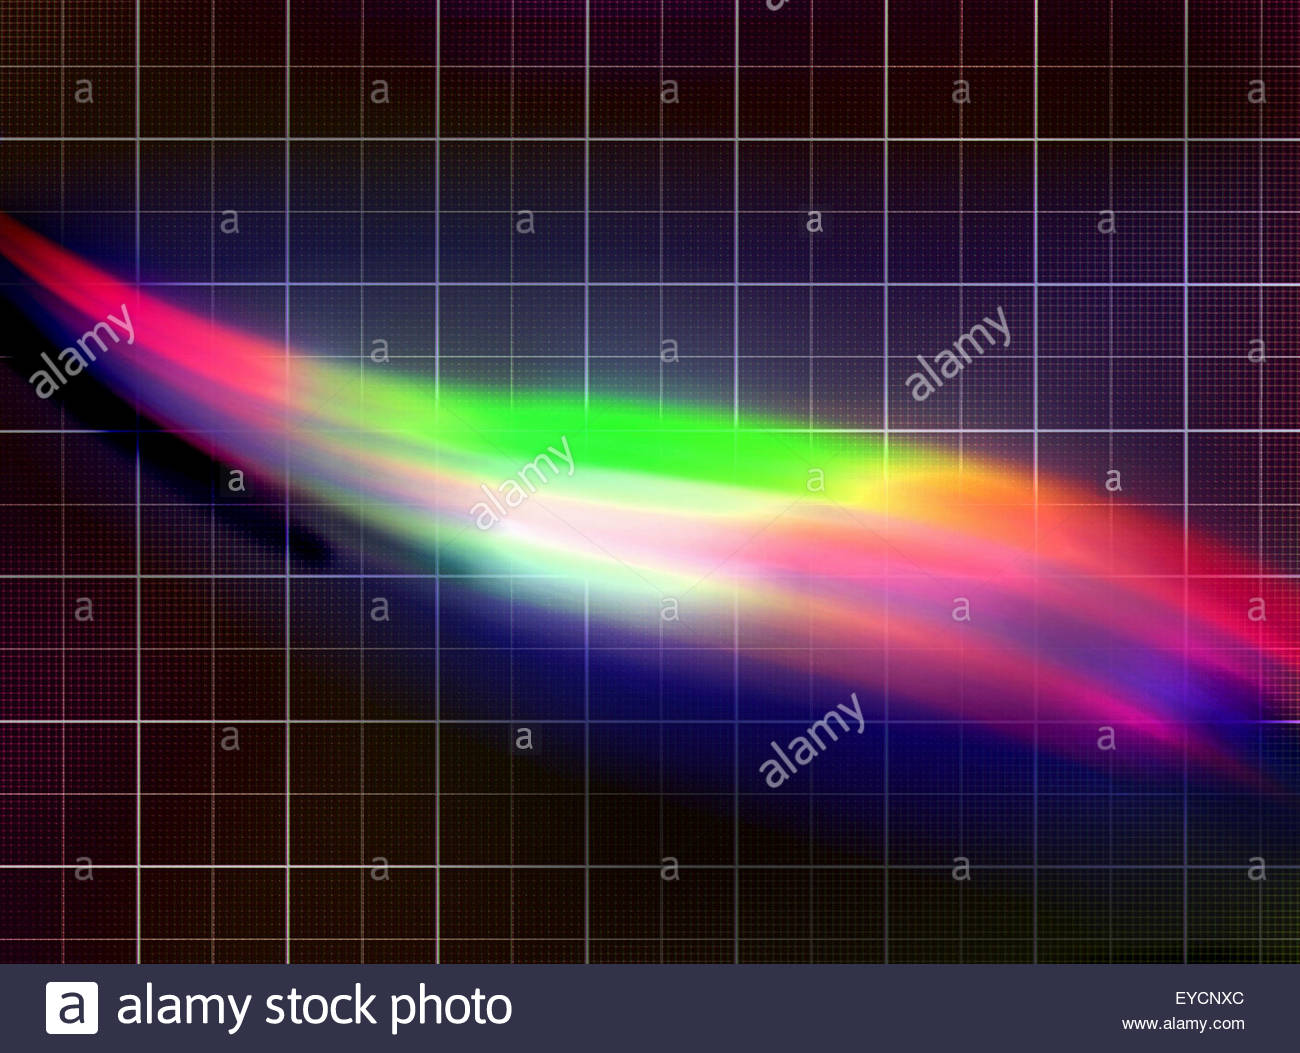 Abstract pattern of light spectrum over graph paper grid - Stock Image